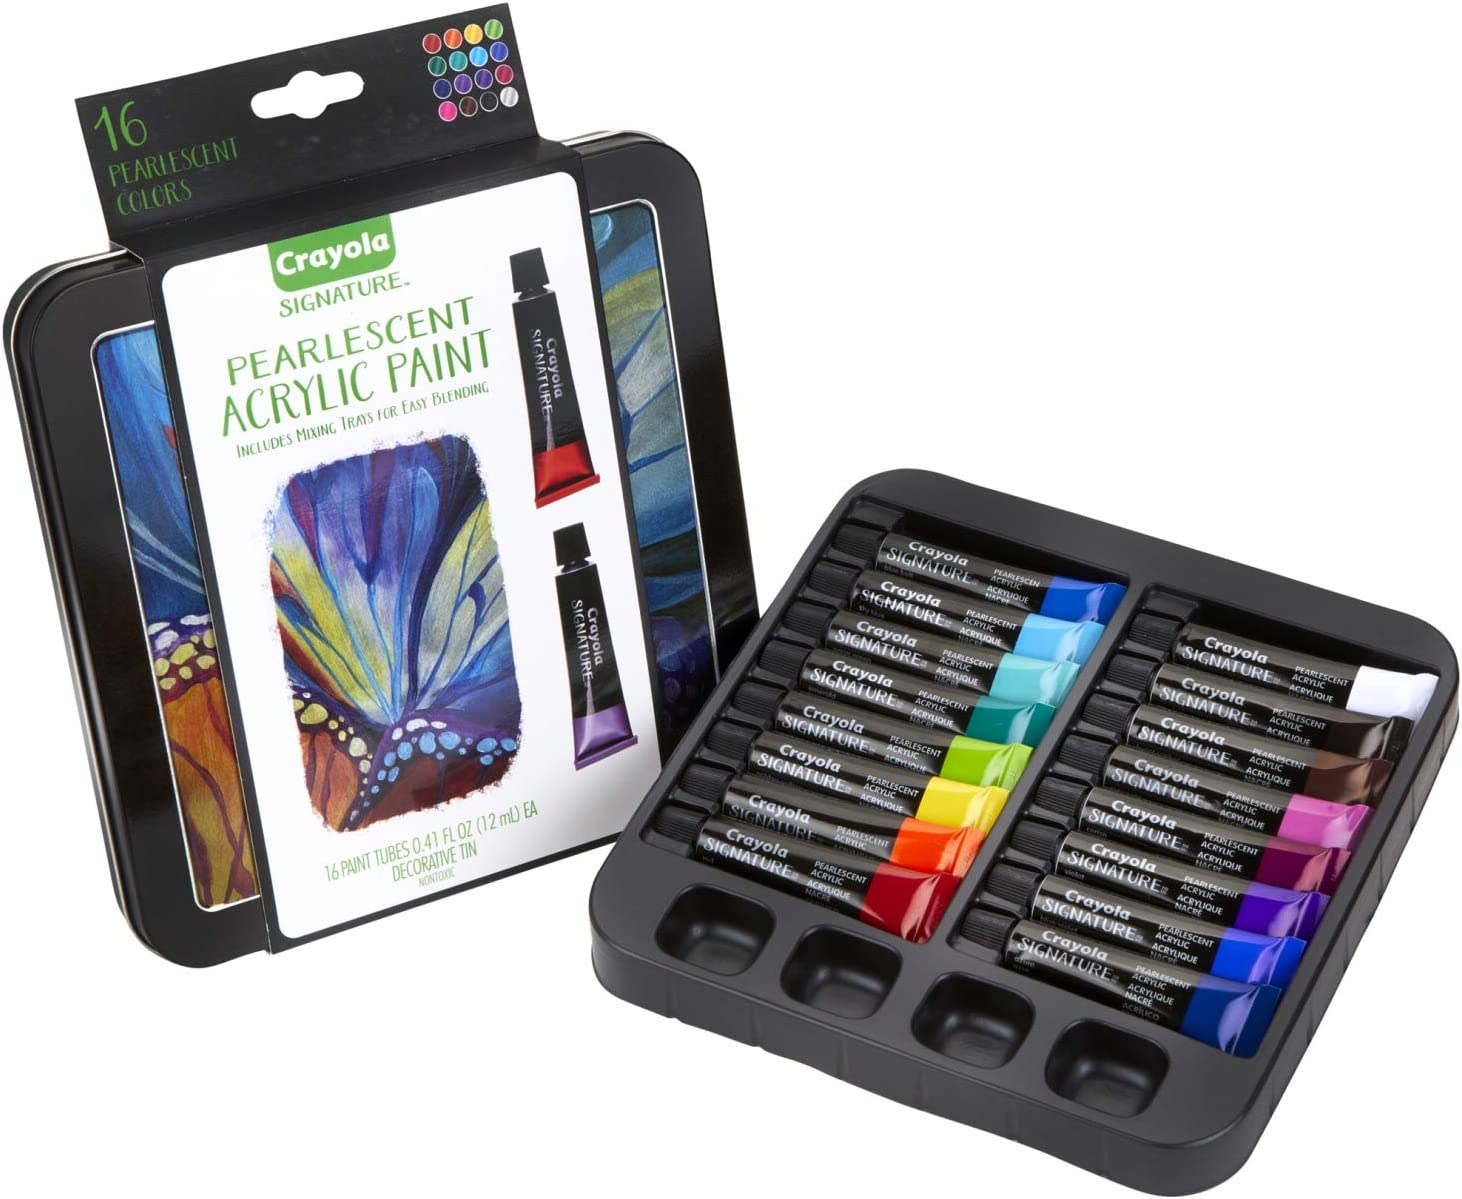 Crayola Pearlescent Acrylic Paints with Decorative Storage Tin, Gift for Adults, 16Count